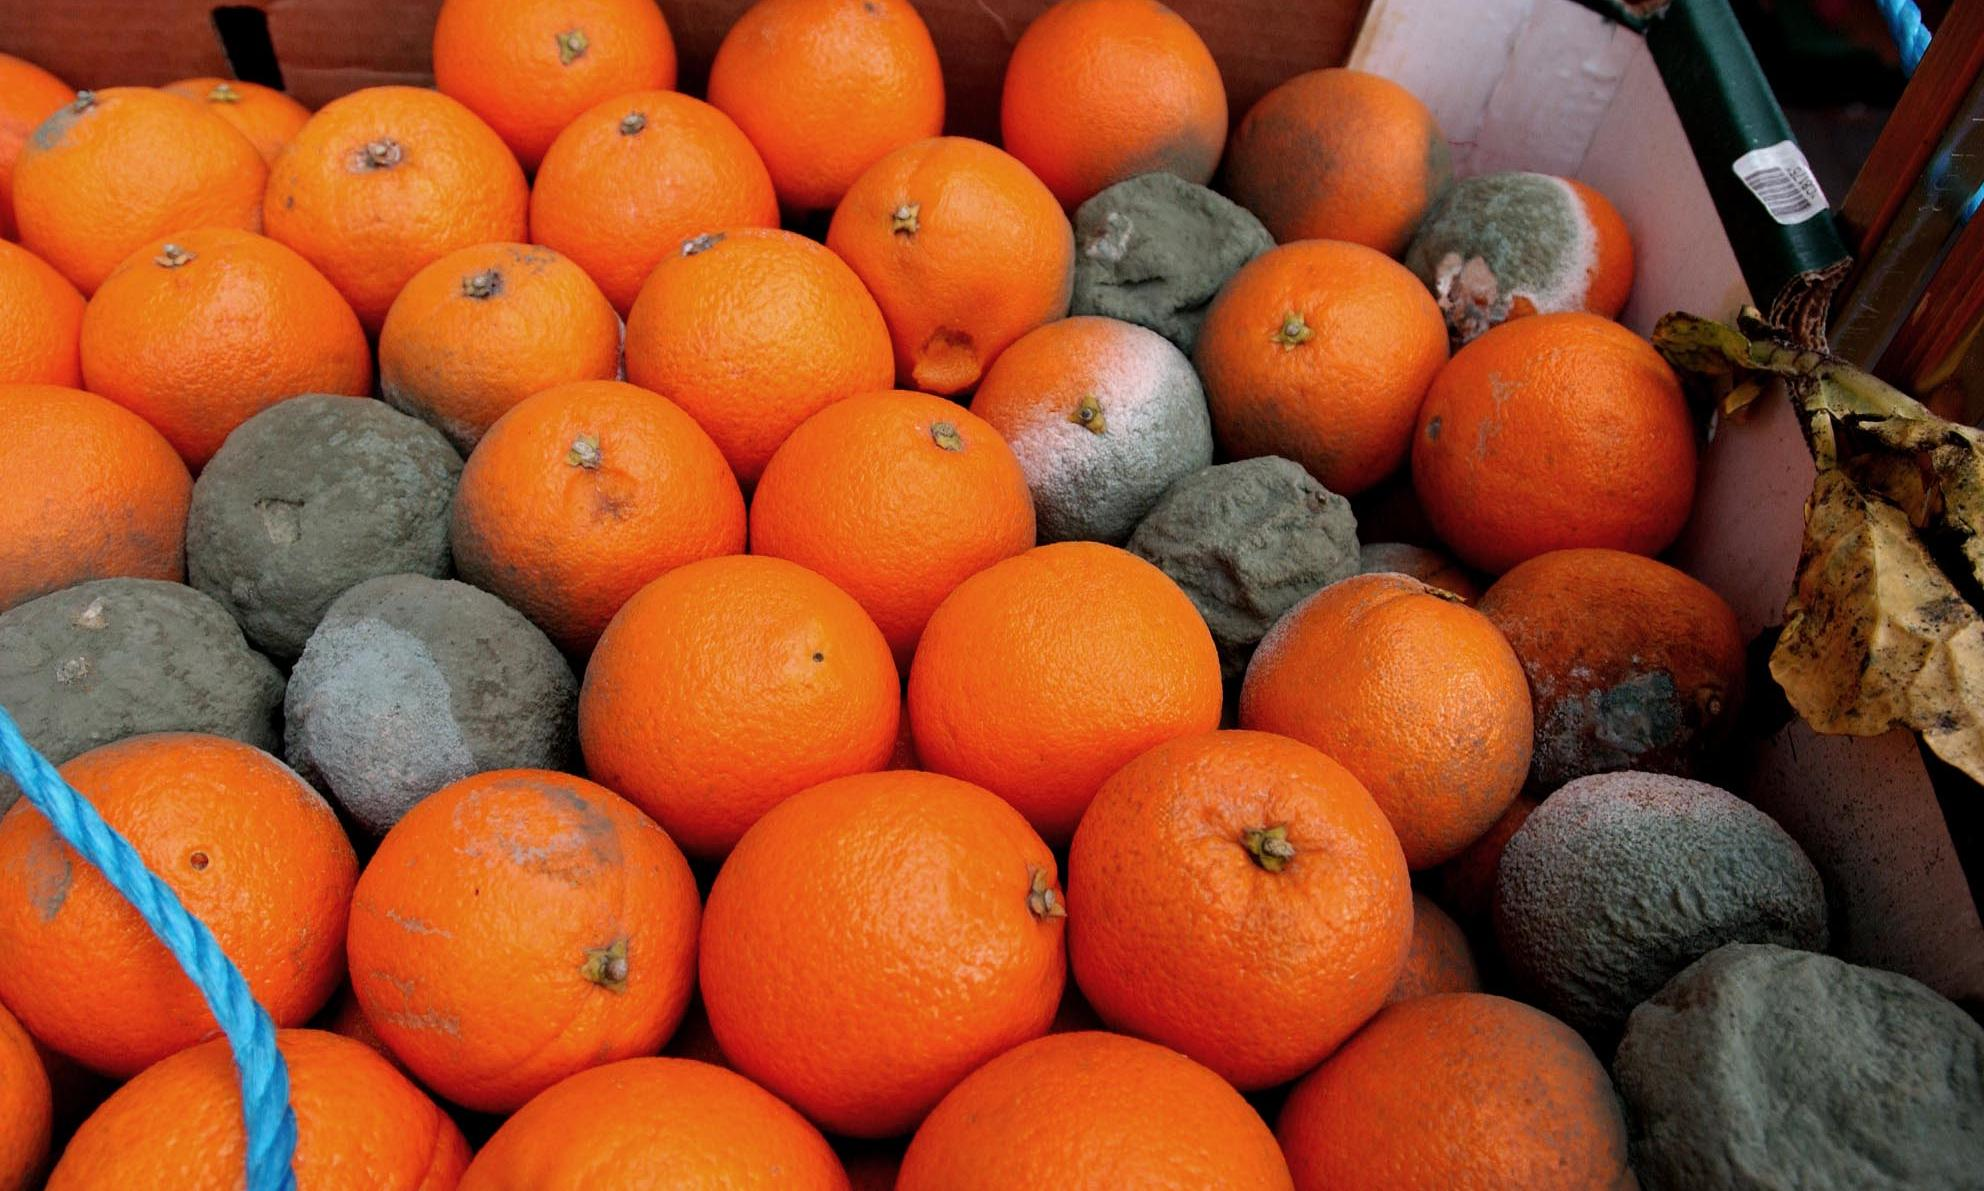 produce wasting: oranges